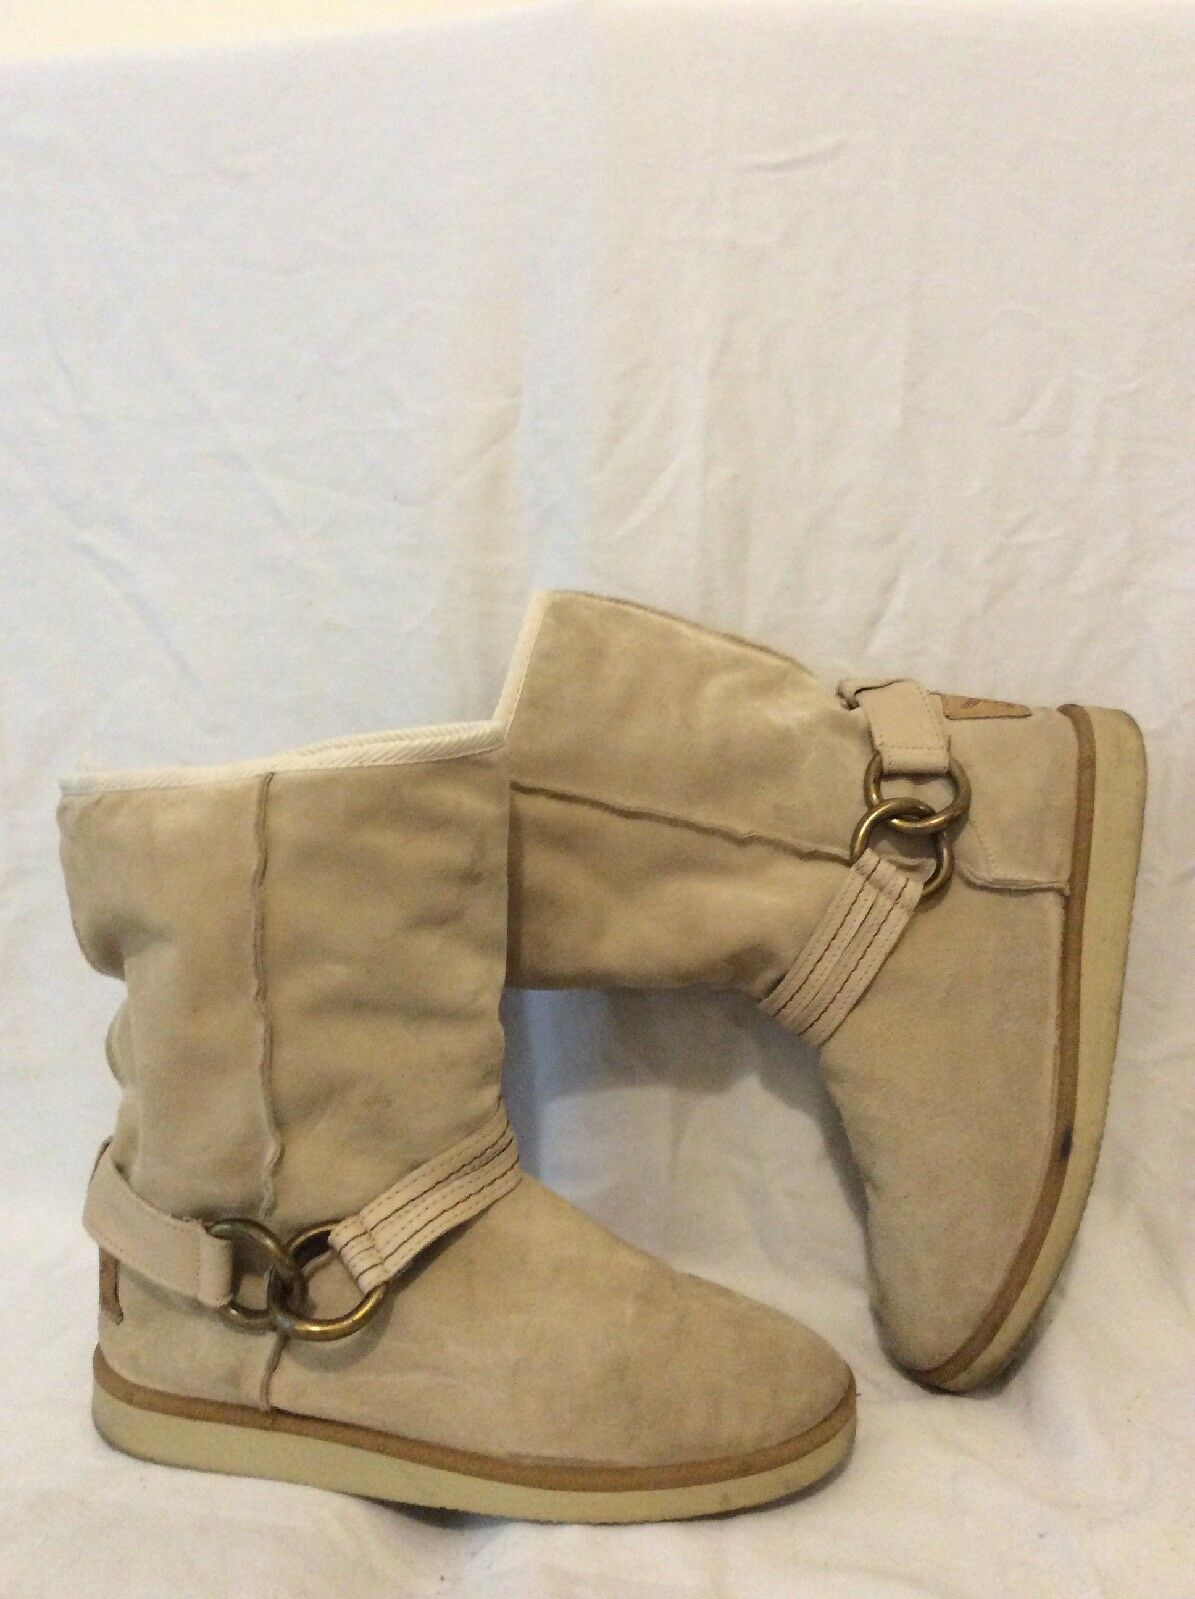 River Island Beige Mid Calf Suede Boots Size 6